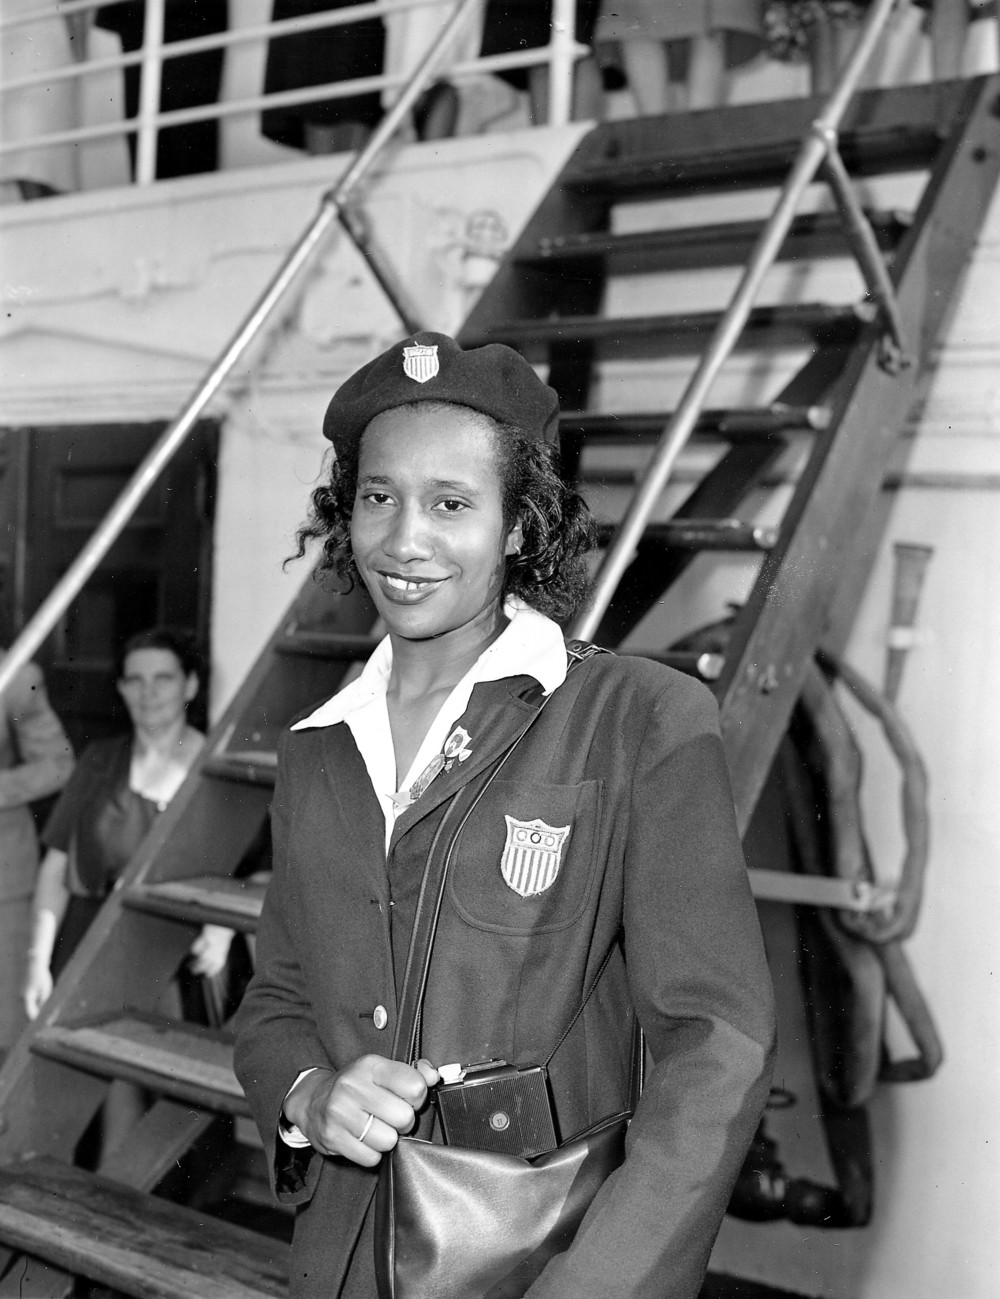 Born in Albany, Georgia, on November 9, 1923, Alice Coachman made history at the 1948 Olympics in London when she leapt to a record-breaking height of 5 feet, 6 and 1/8 inches in the high jump finals to become the first black woman to win an Olympic gold medal.